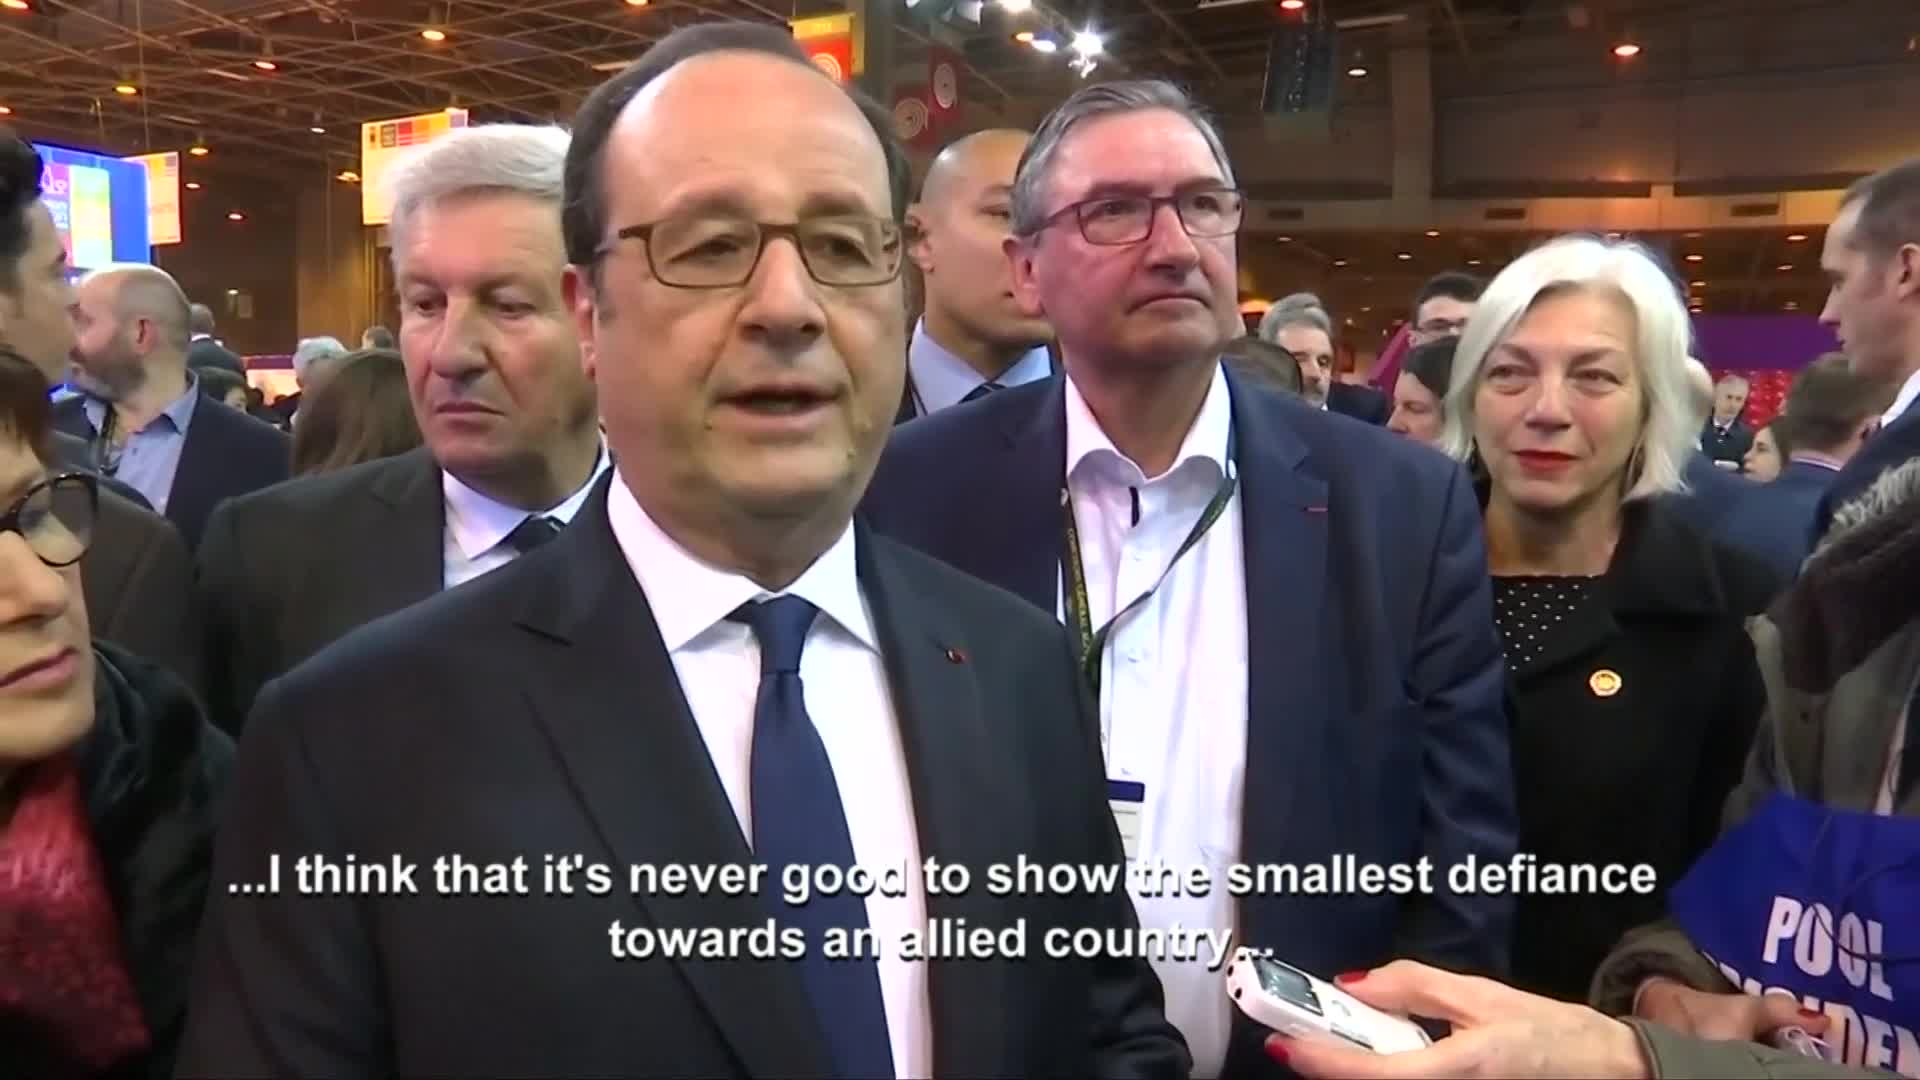 France's Hollande replies to Trump comments as he opens Paris farm show